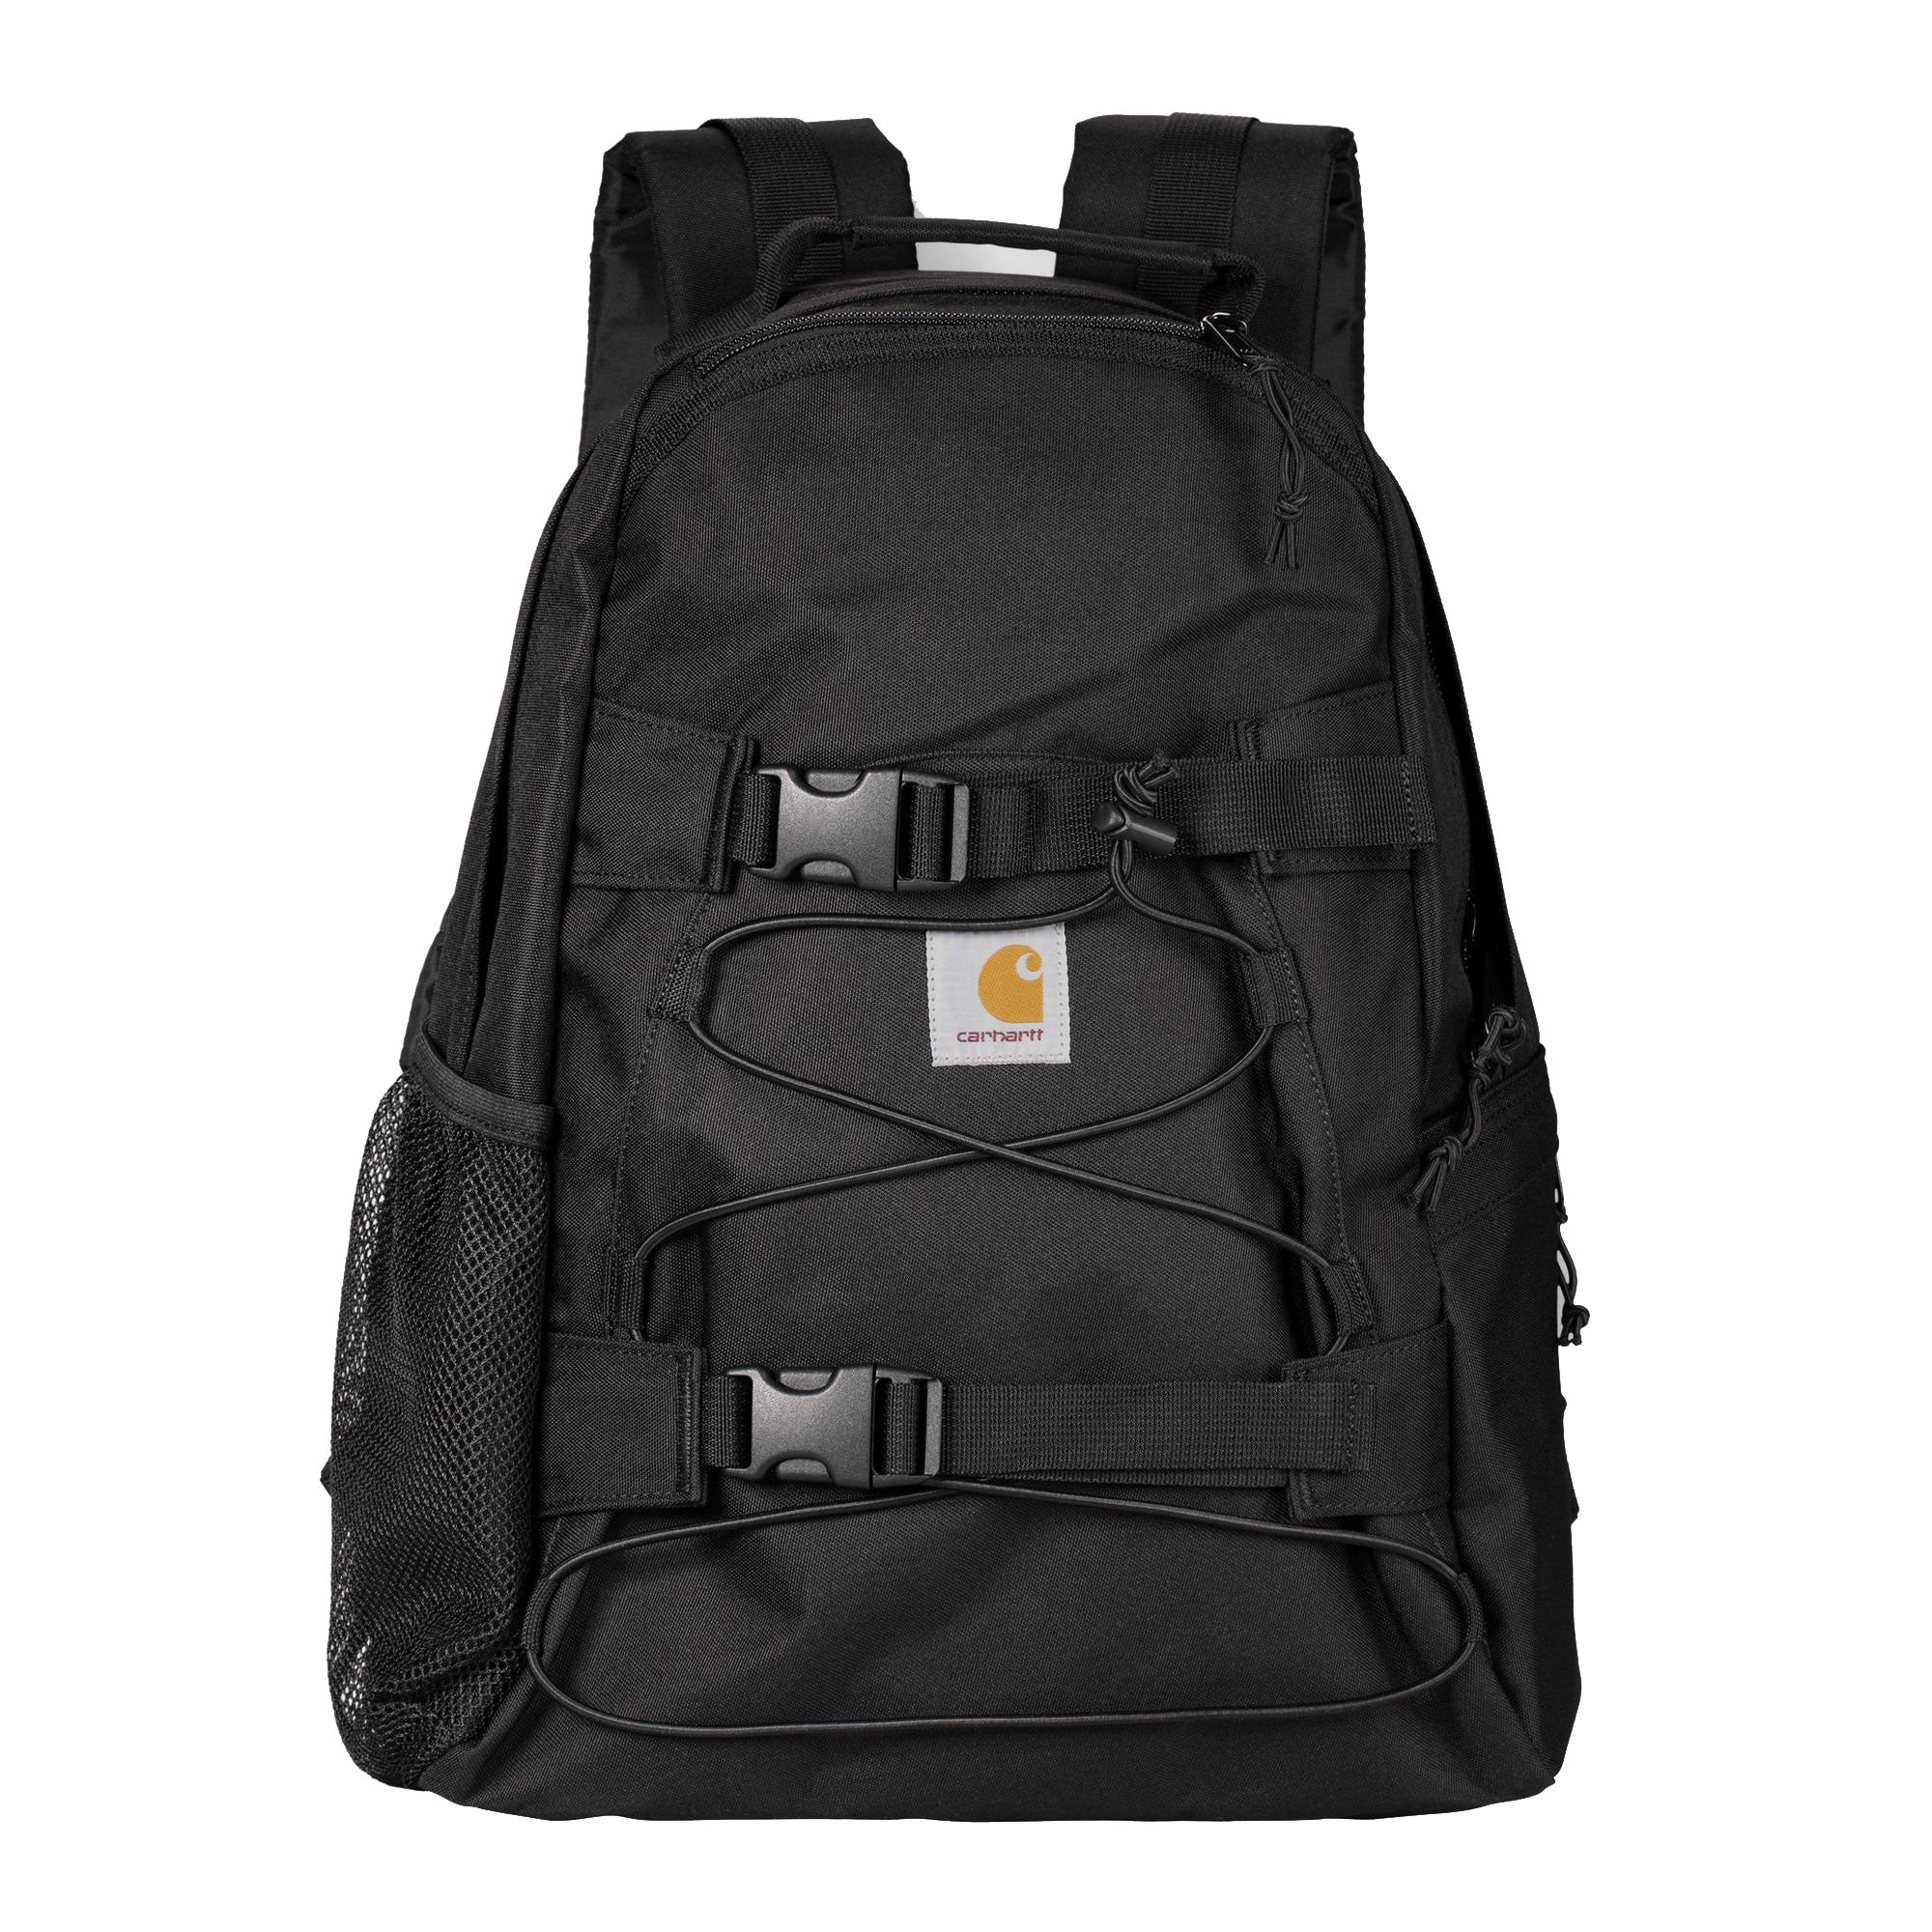 Carhartt Kickflip Backpack Product Photo #1